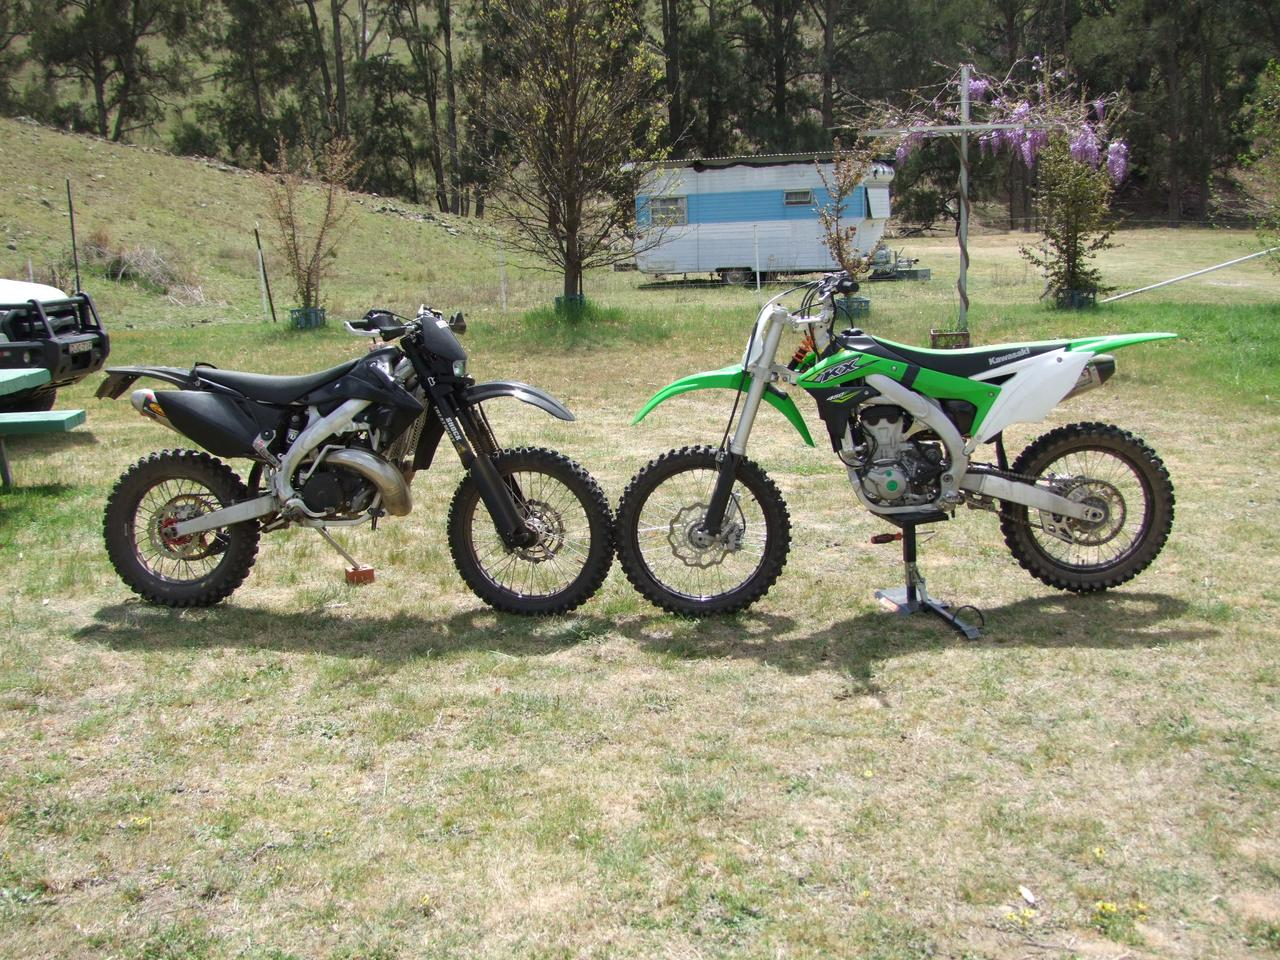 Side by side with a standard dirtbike you can see how much more vertically the forks are mounted